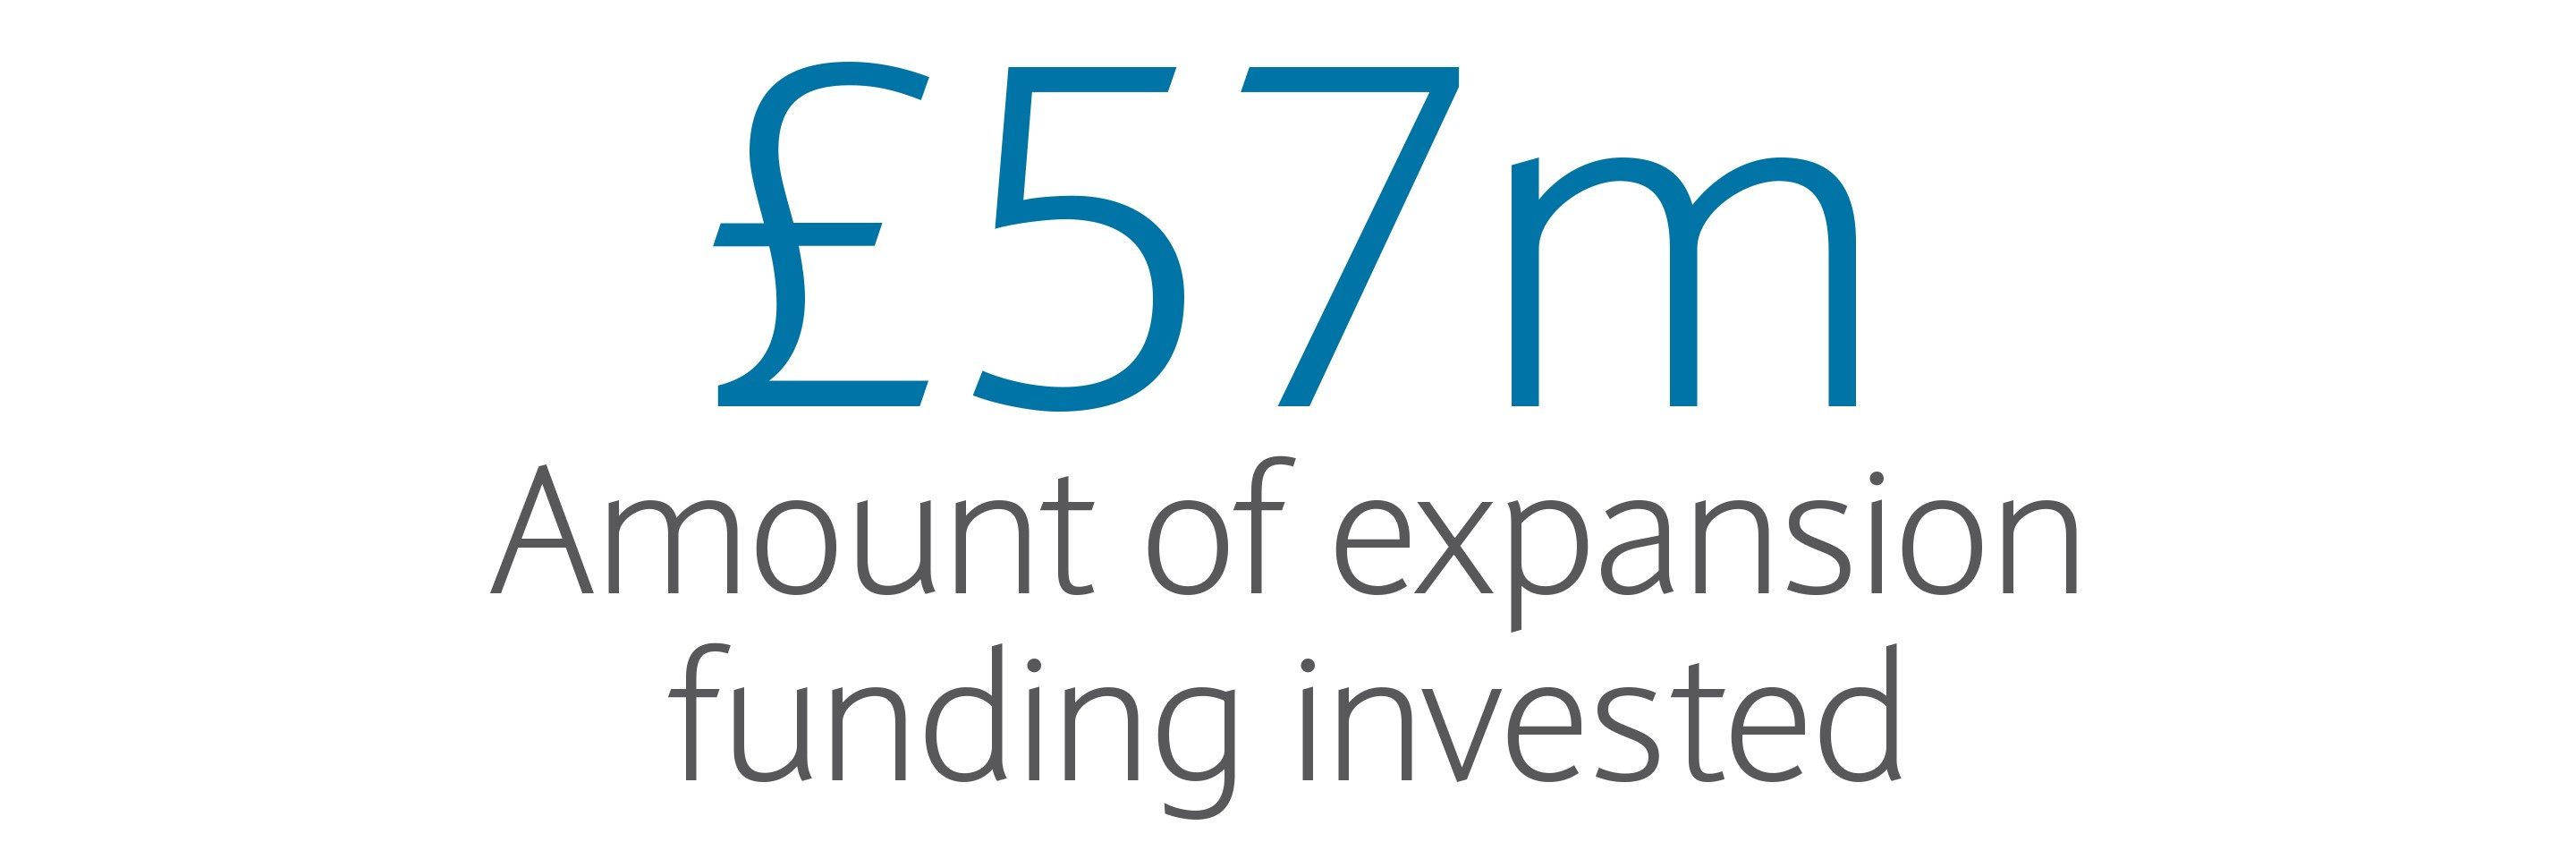 £57m: Amount of expansion funding invested